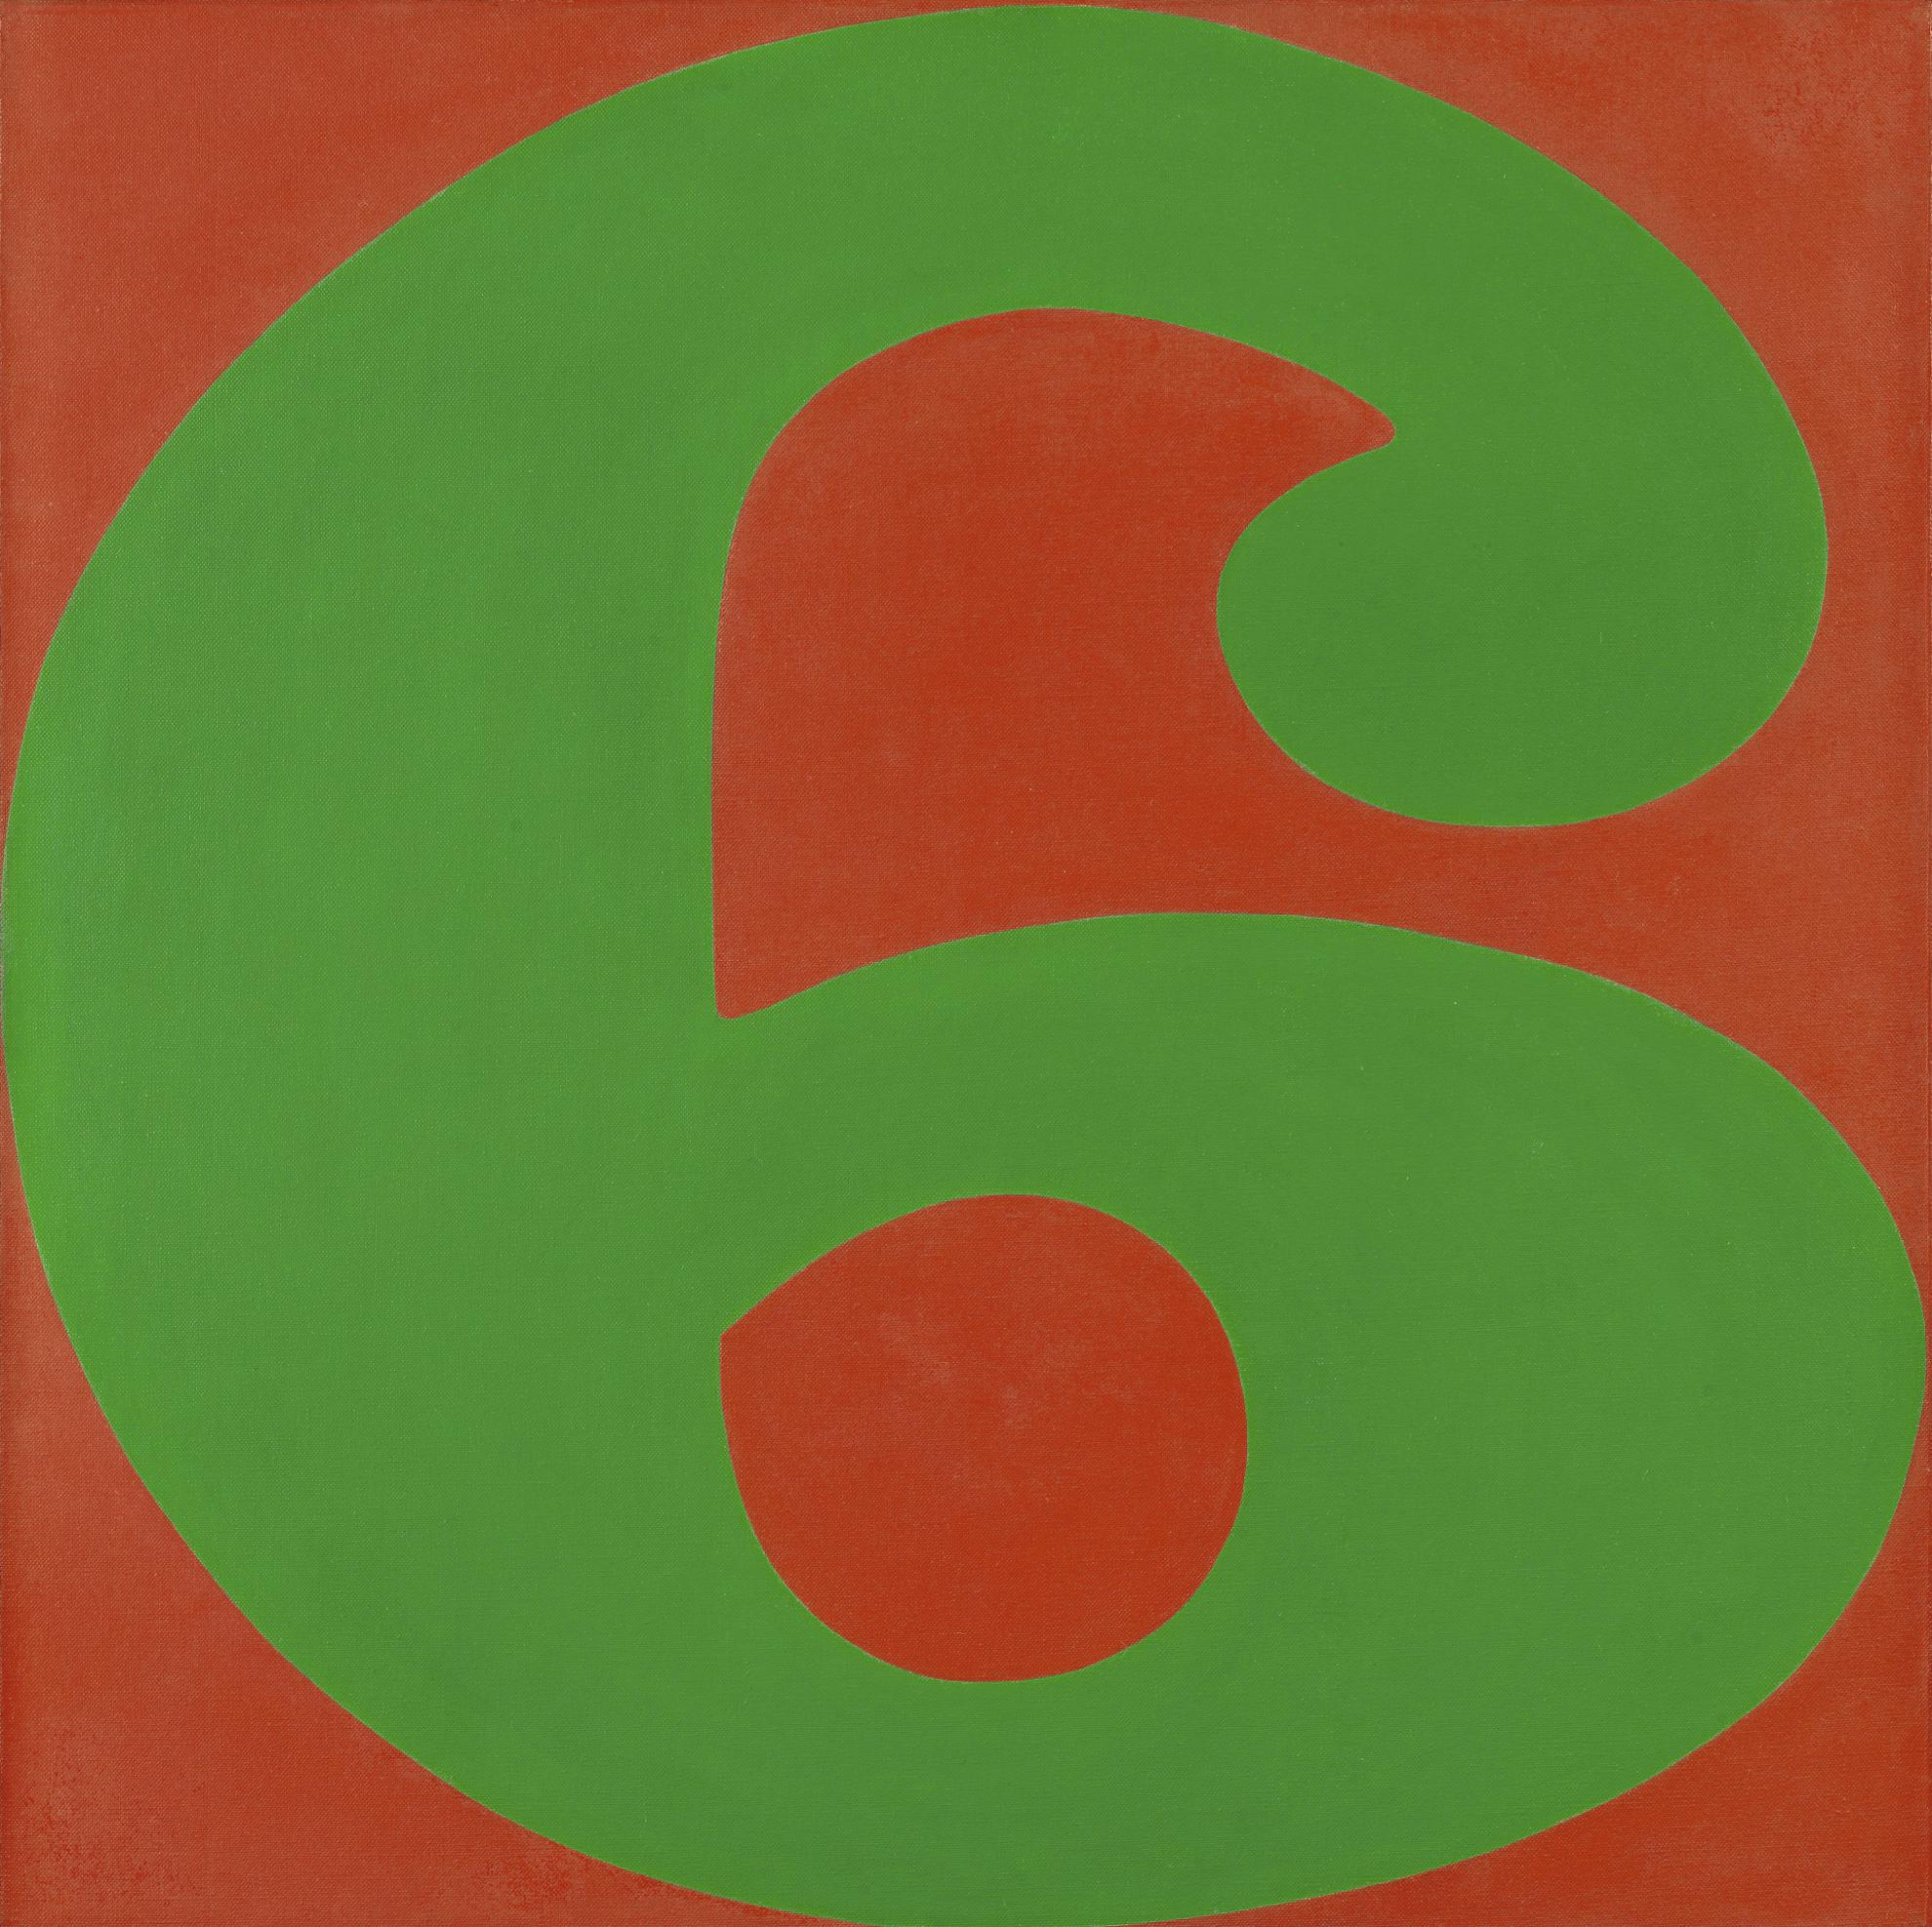 Robert Indiana-Six-1965